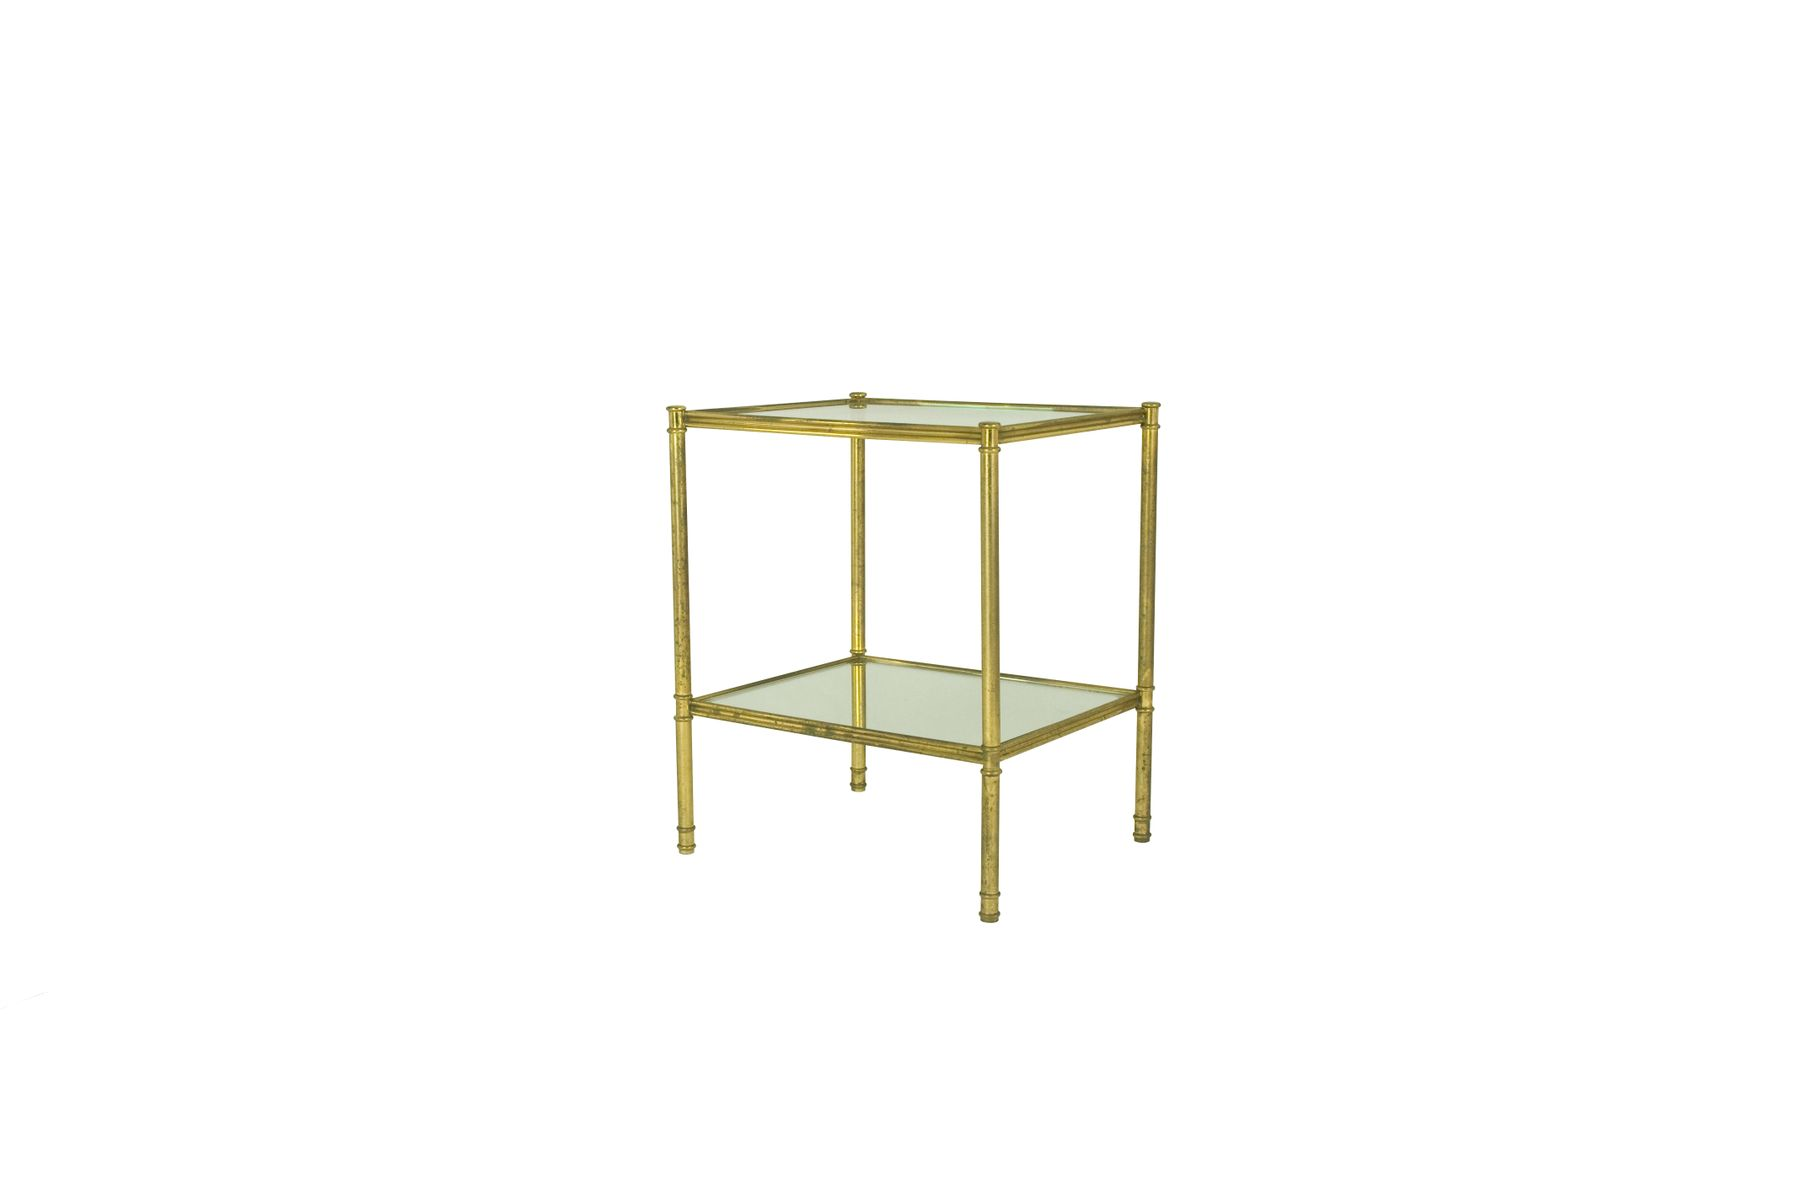 italian brass  glass side tables s set of  for sale at pamono - italian brass  glass side tables s set of